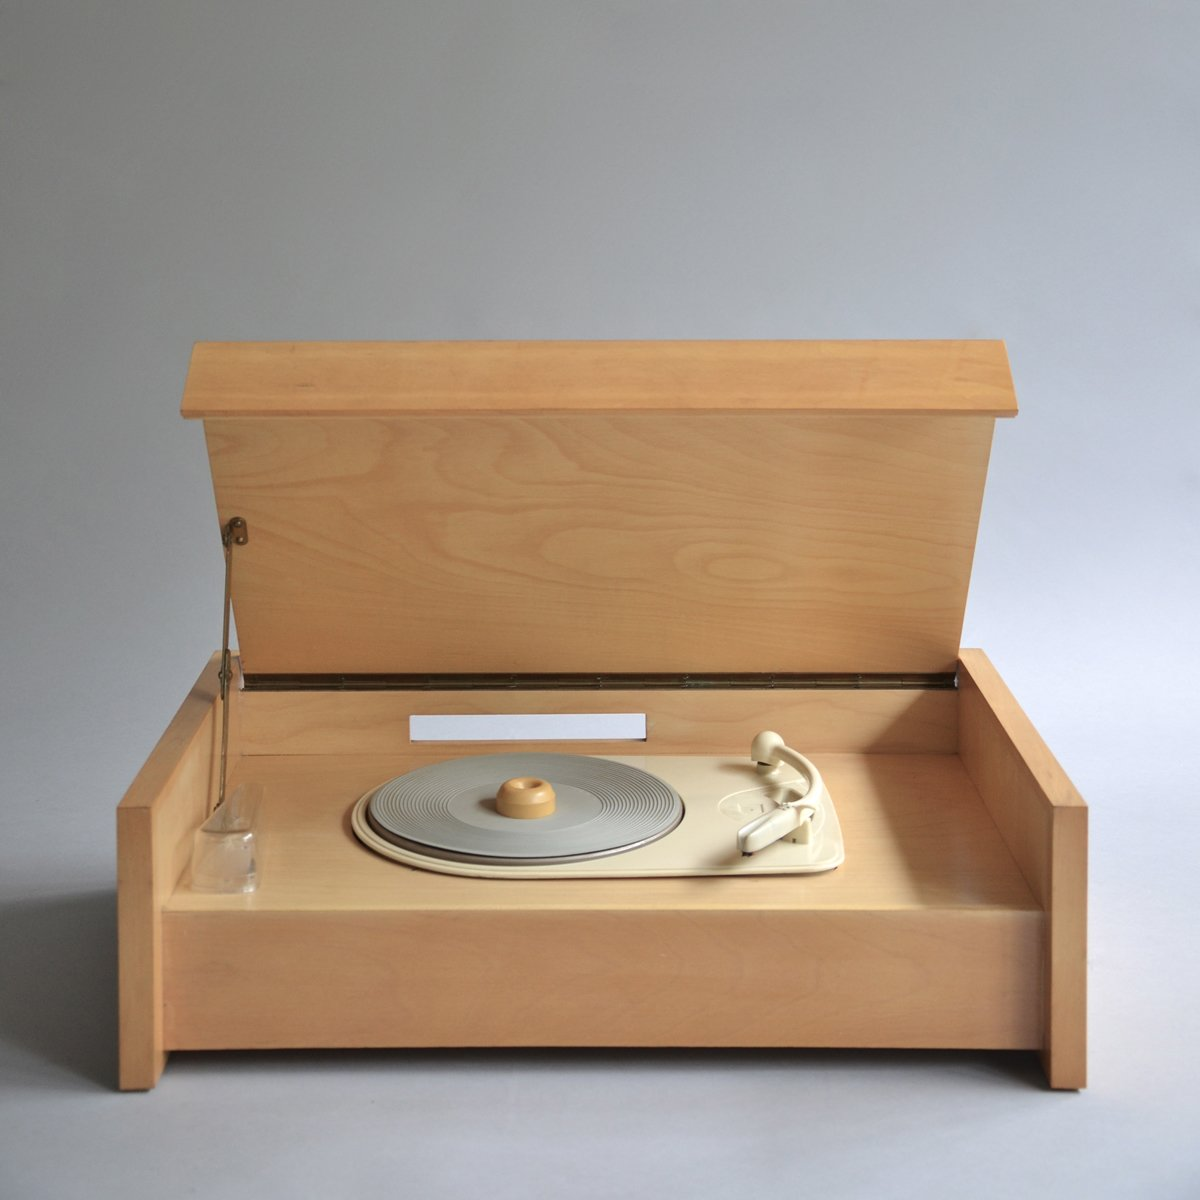 "An earlier version of the record player and one of a foundational group of designs produced in 1955, the inaugural year of Braun Design. Braun G 12 (Valvo chassis) by Hans Gugelot, on sale for £650.  ""Although production of Gugelot's G series continued into the early '60s, this vocabulary was soon eclipsed by Ram's development of a less romantic, more affirmatively industrial approach,"" writes Kapos. Sound Style by Stephen Blake"